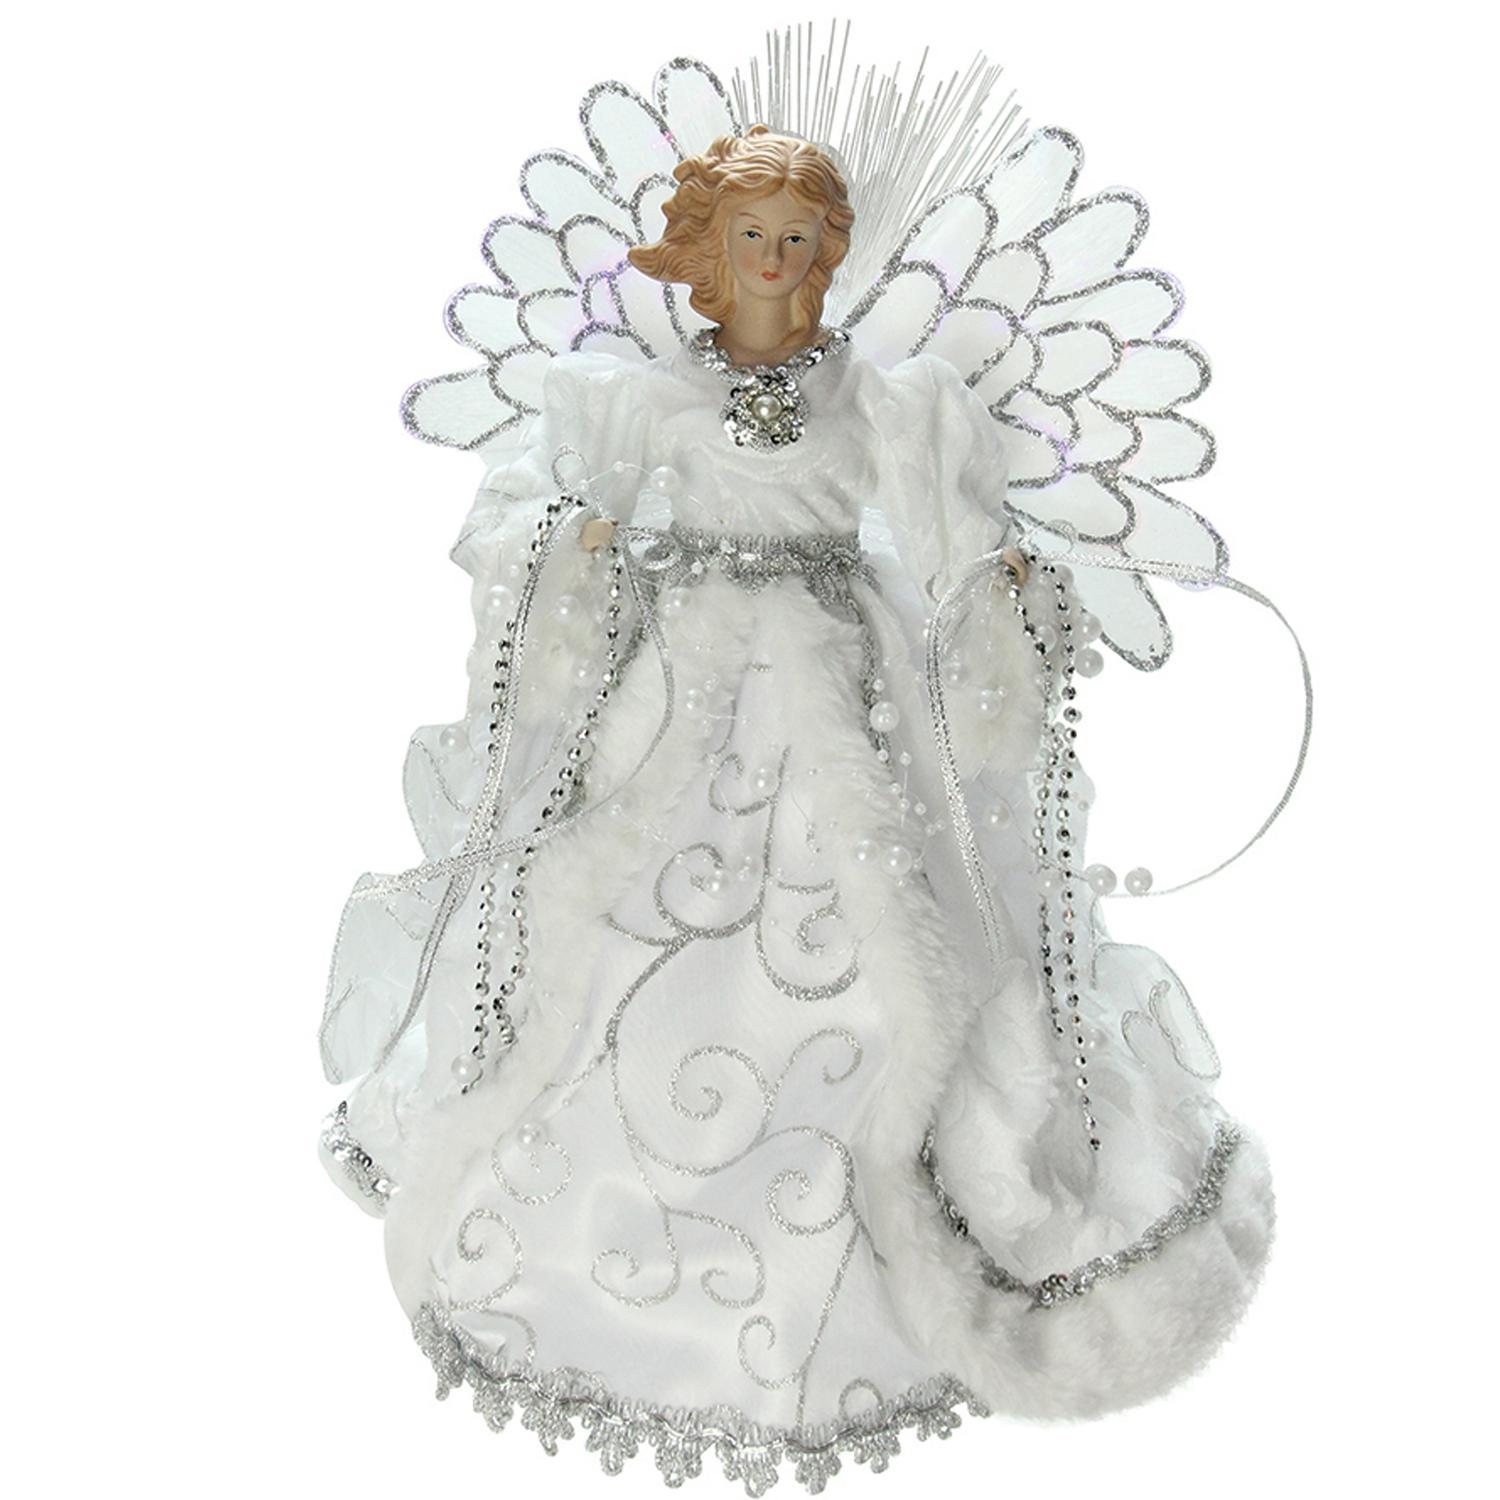 ''13'''' Lighted B/O Fiber Optic Angel with White Gown Christmas Tree Topper''